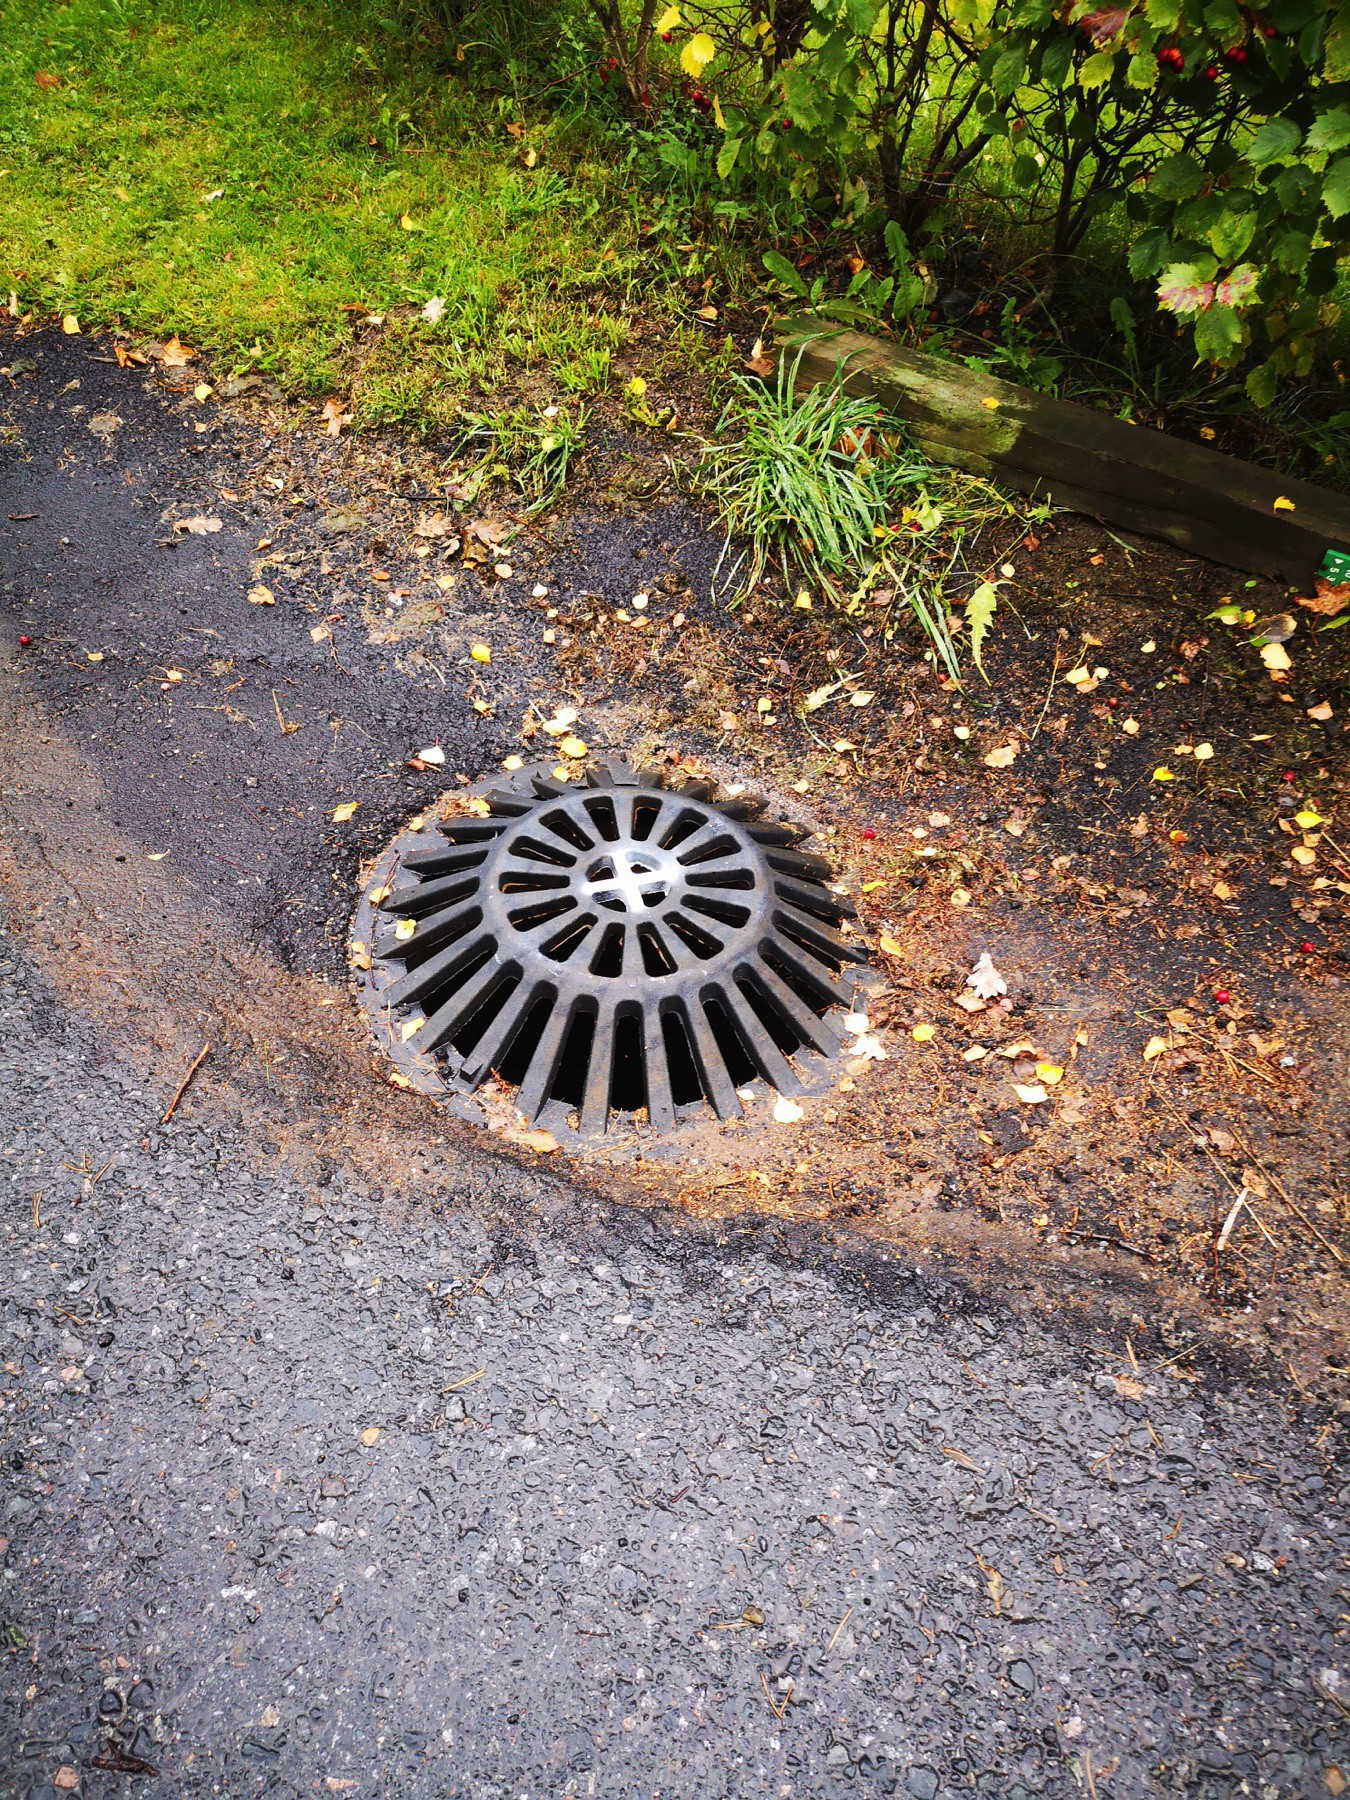 Drainage sewer grid